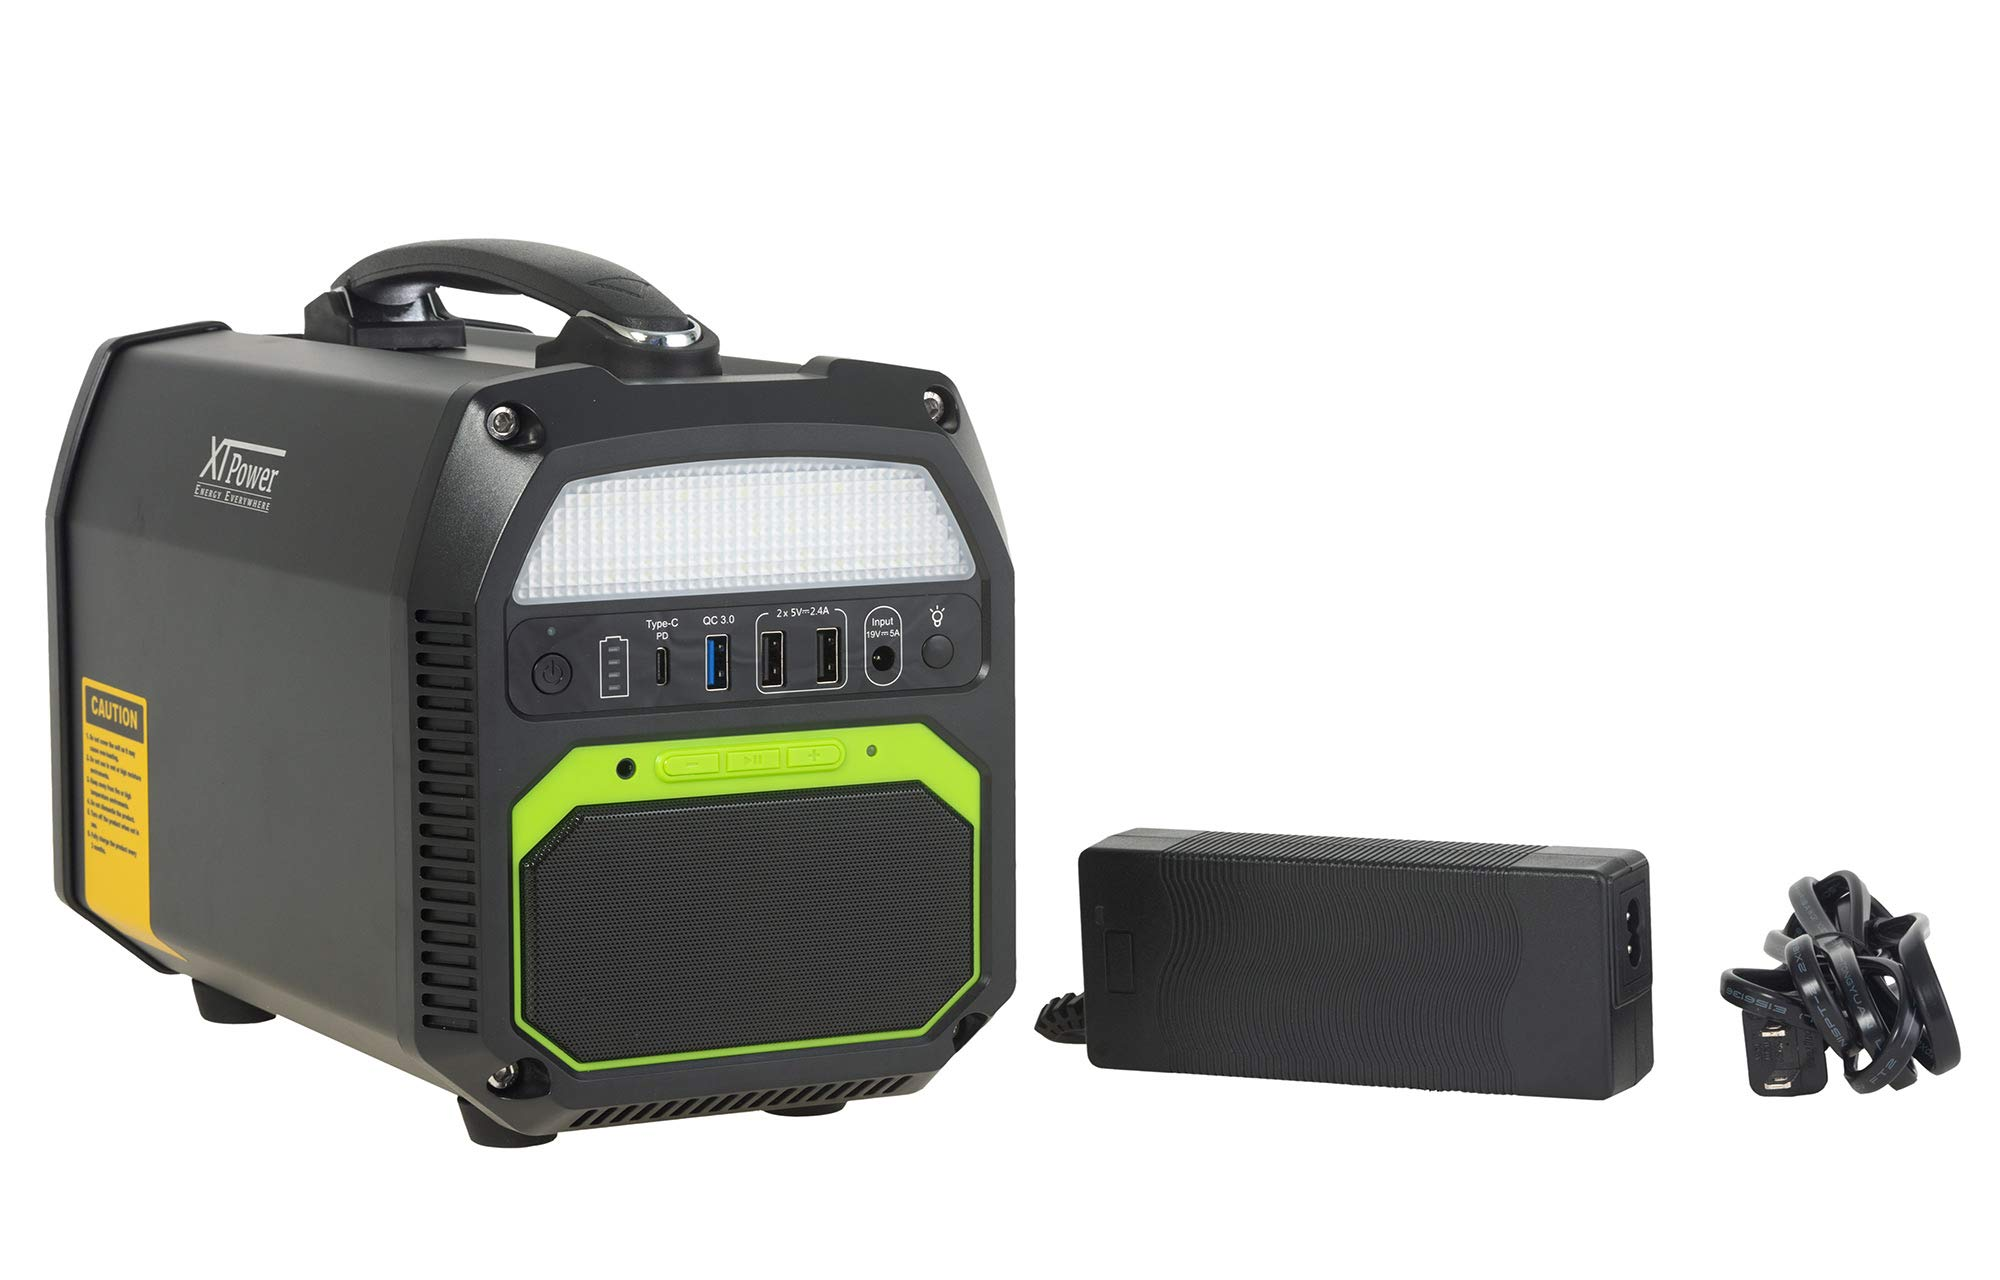 XTPower XT-460Wh Portable Energy Storage with 462Wh/ 124,800mAh and AC/DC/USB Outputs, Bluetooth Speaker and Built-in Flashlight by XTPower